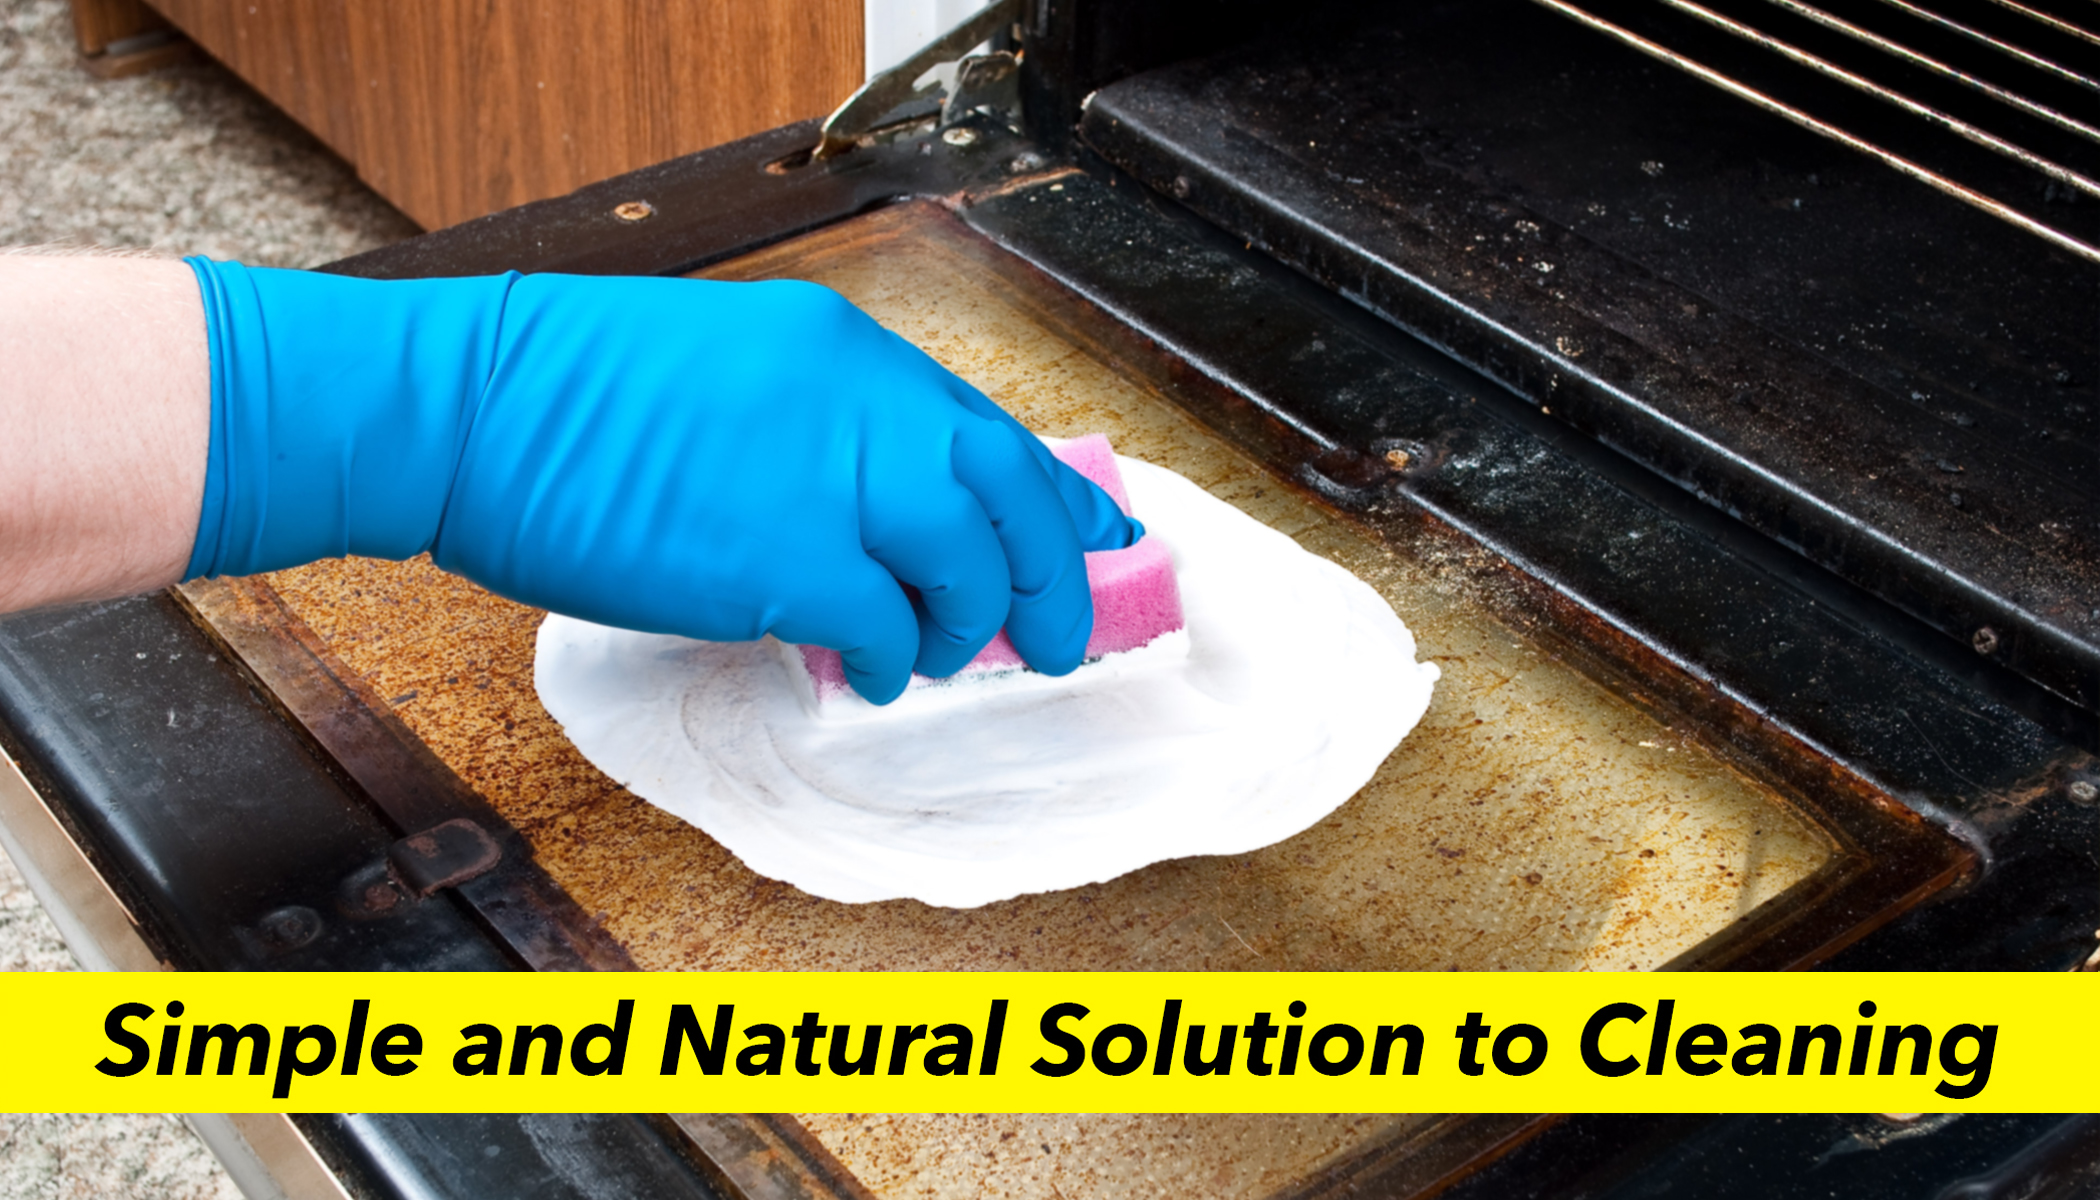 Make This Effective DIY Oven Cleaner With Only Four Basic Items From Your Kitchen